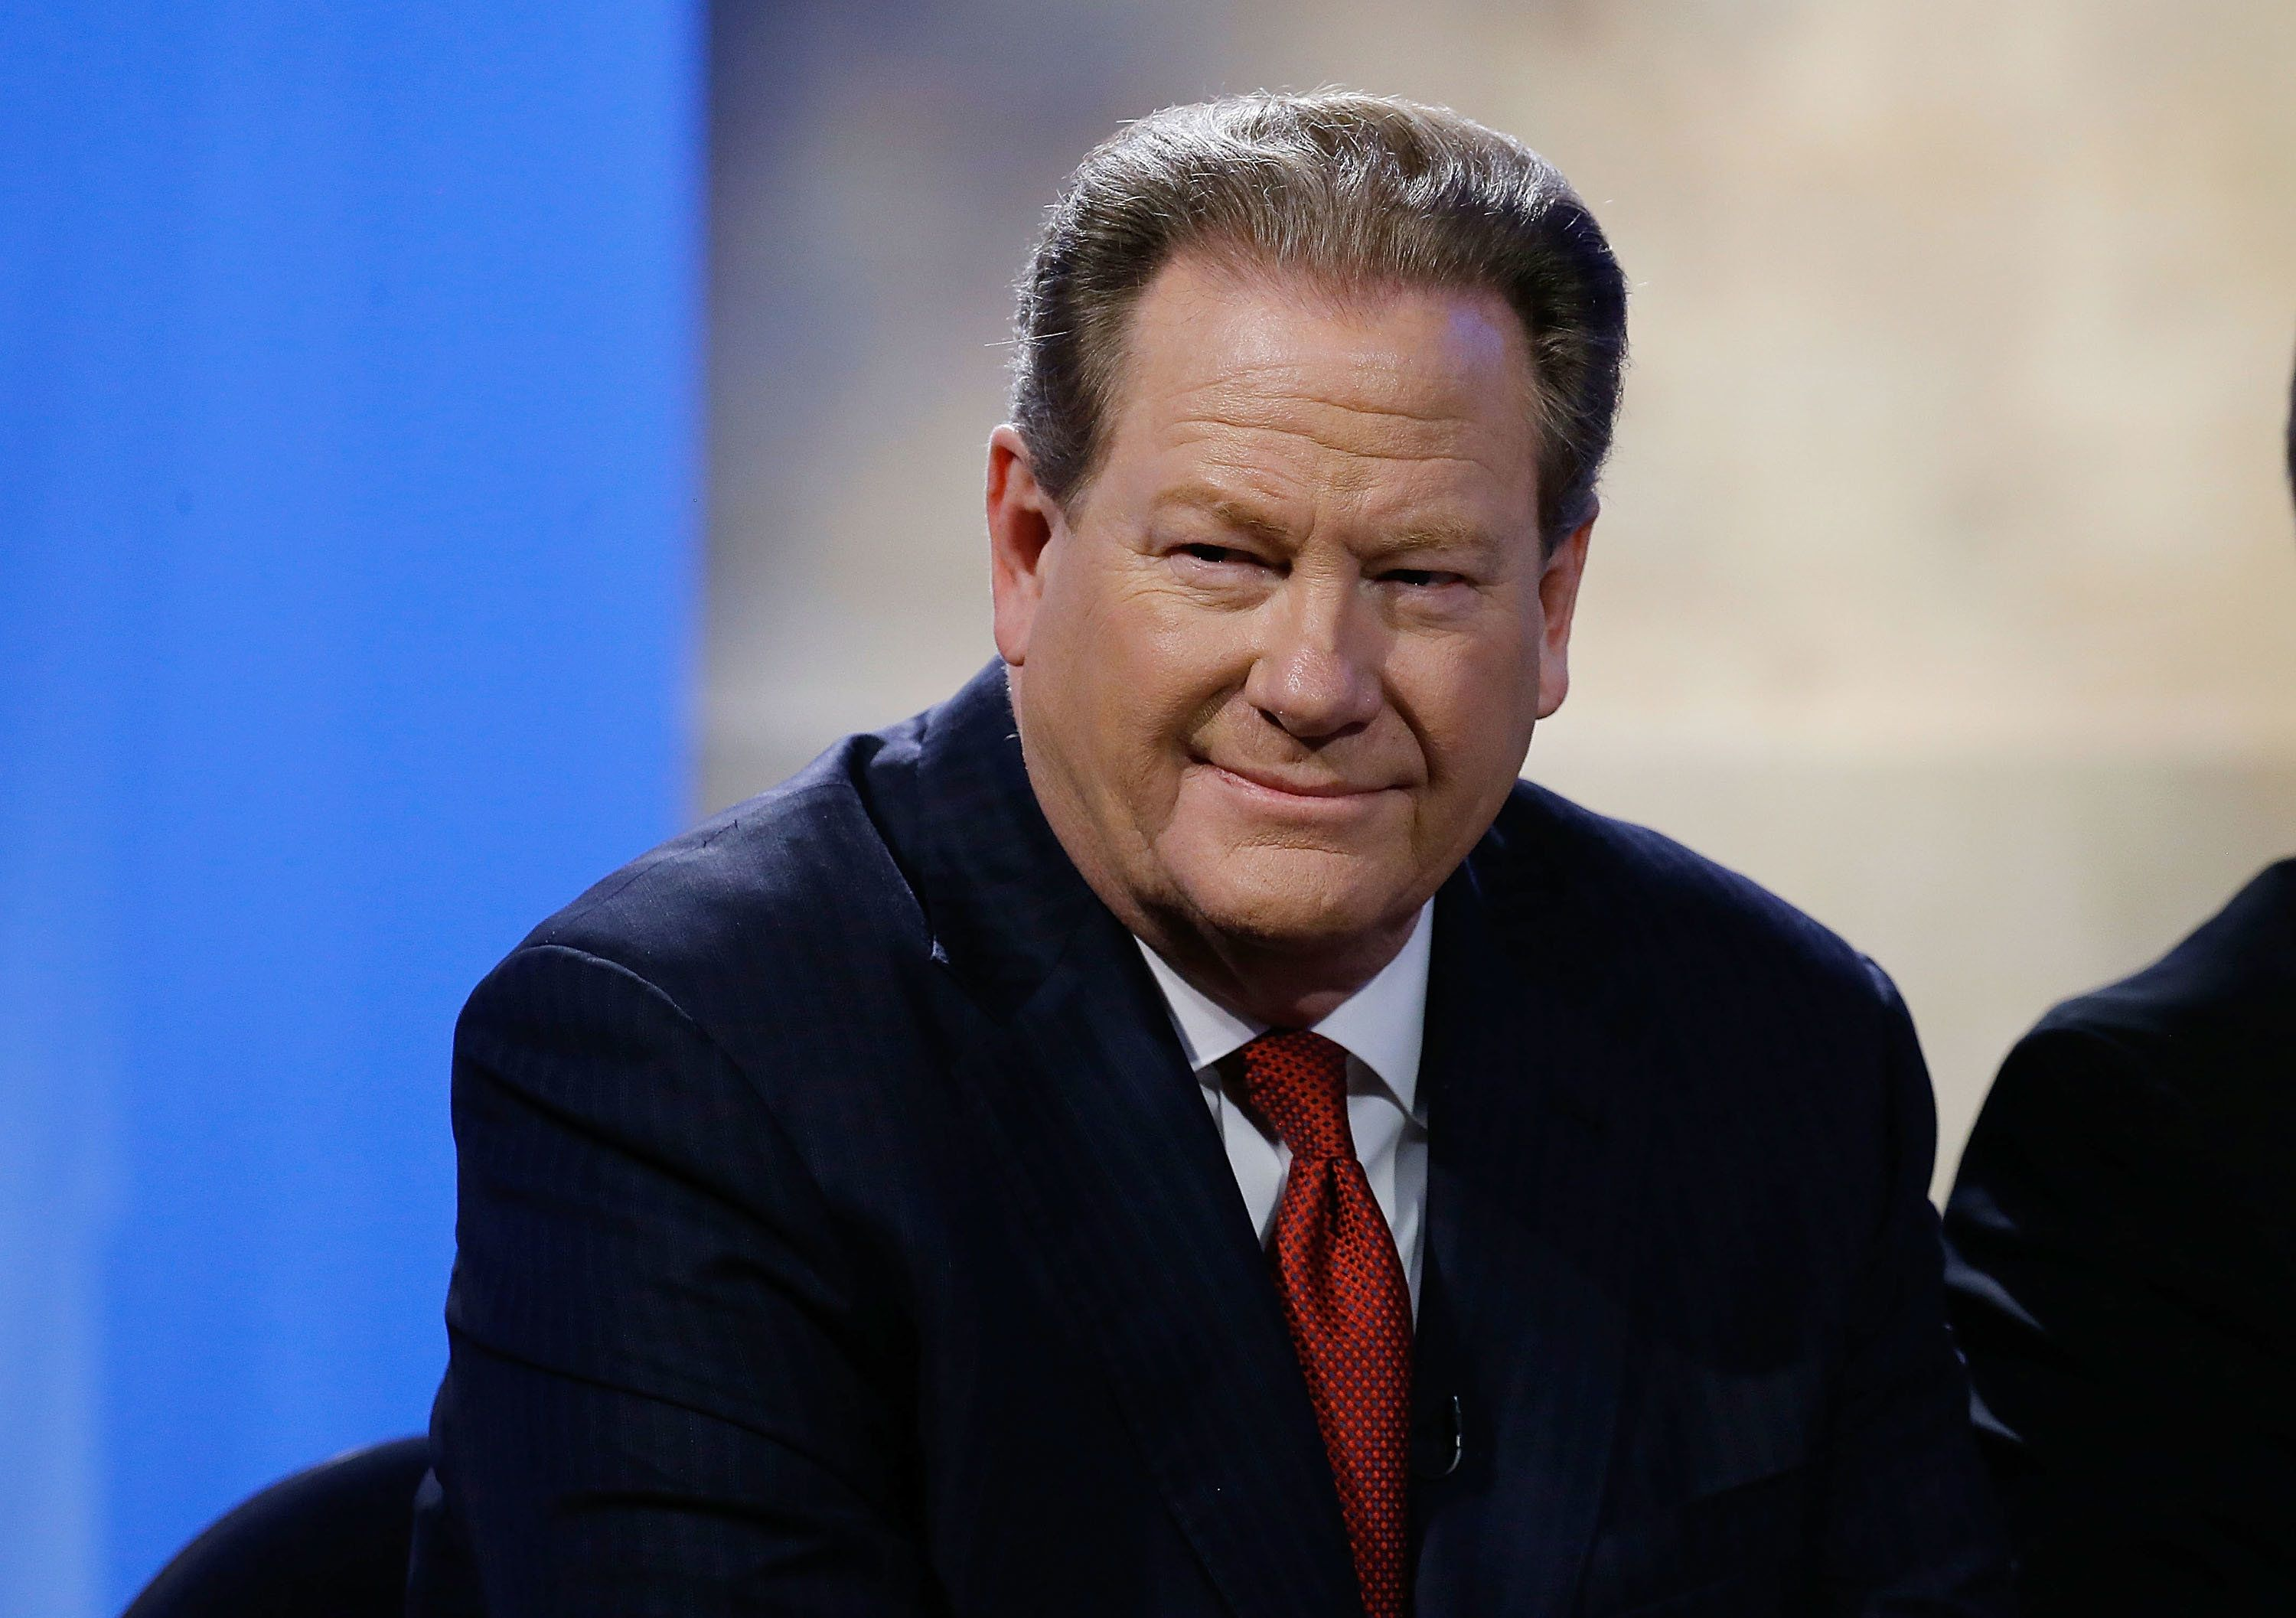 Political pundit and broadcaster Ed Schultz dead at 64